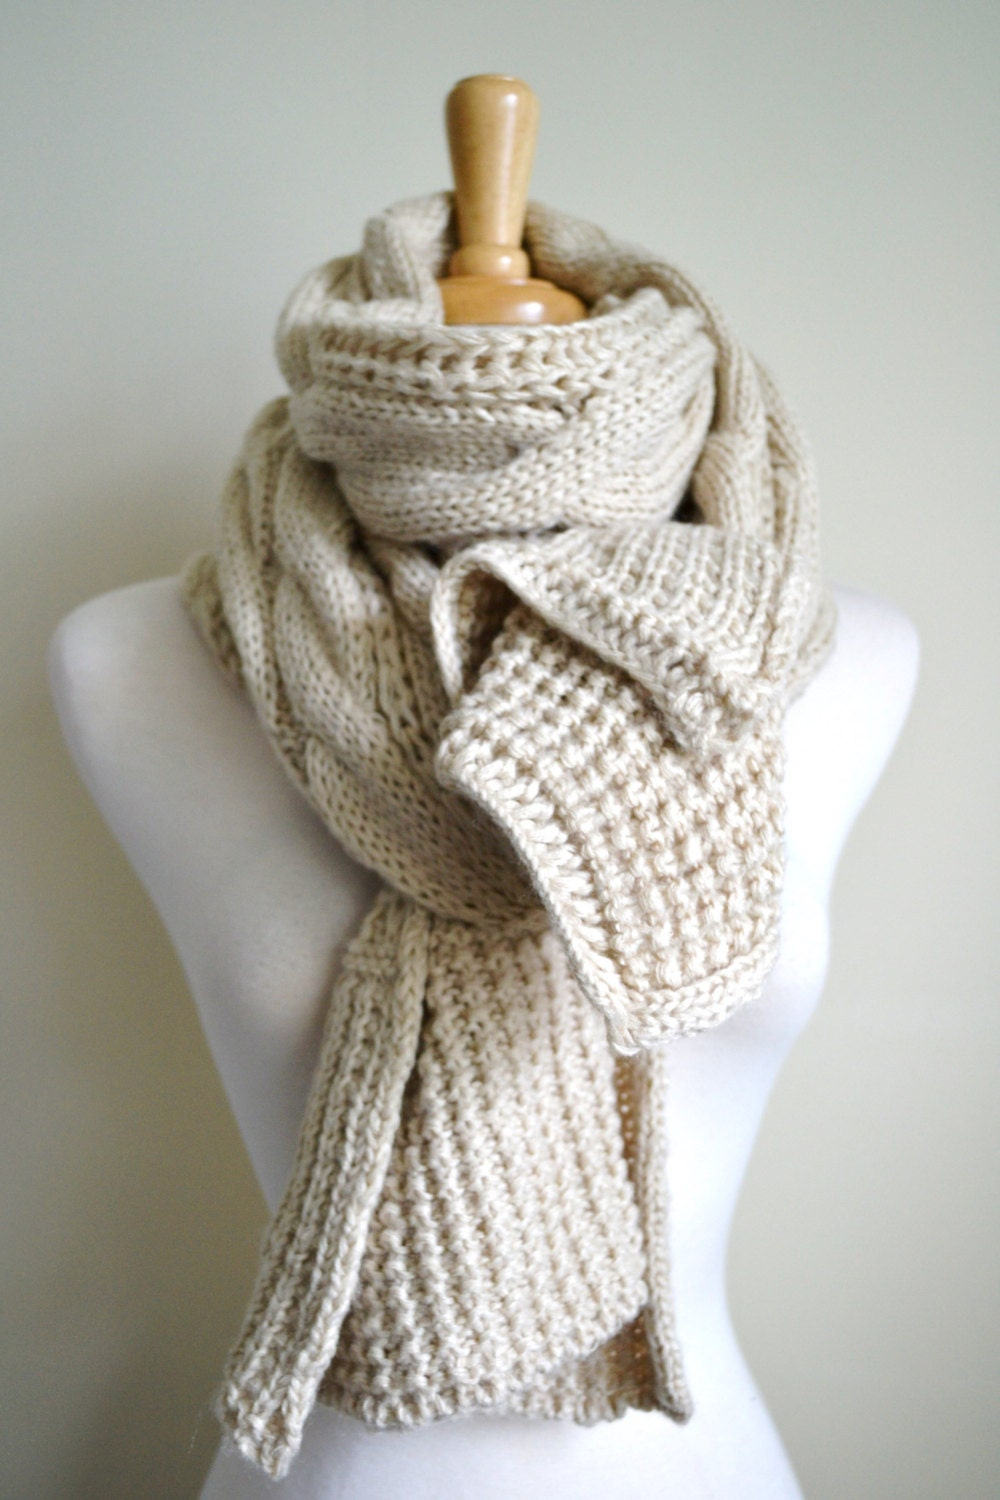 OATMEAL IVORY Creme Off White Chunky Knit Cable Pattern Long Scarf Shawl Wrap...